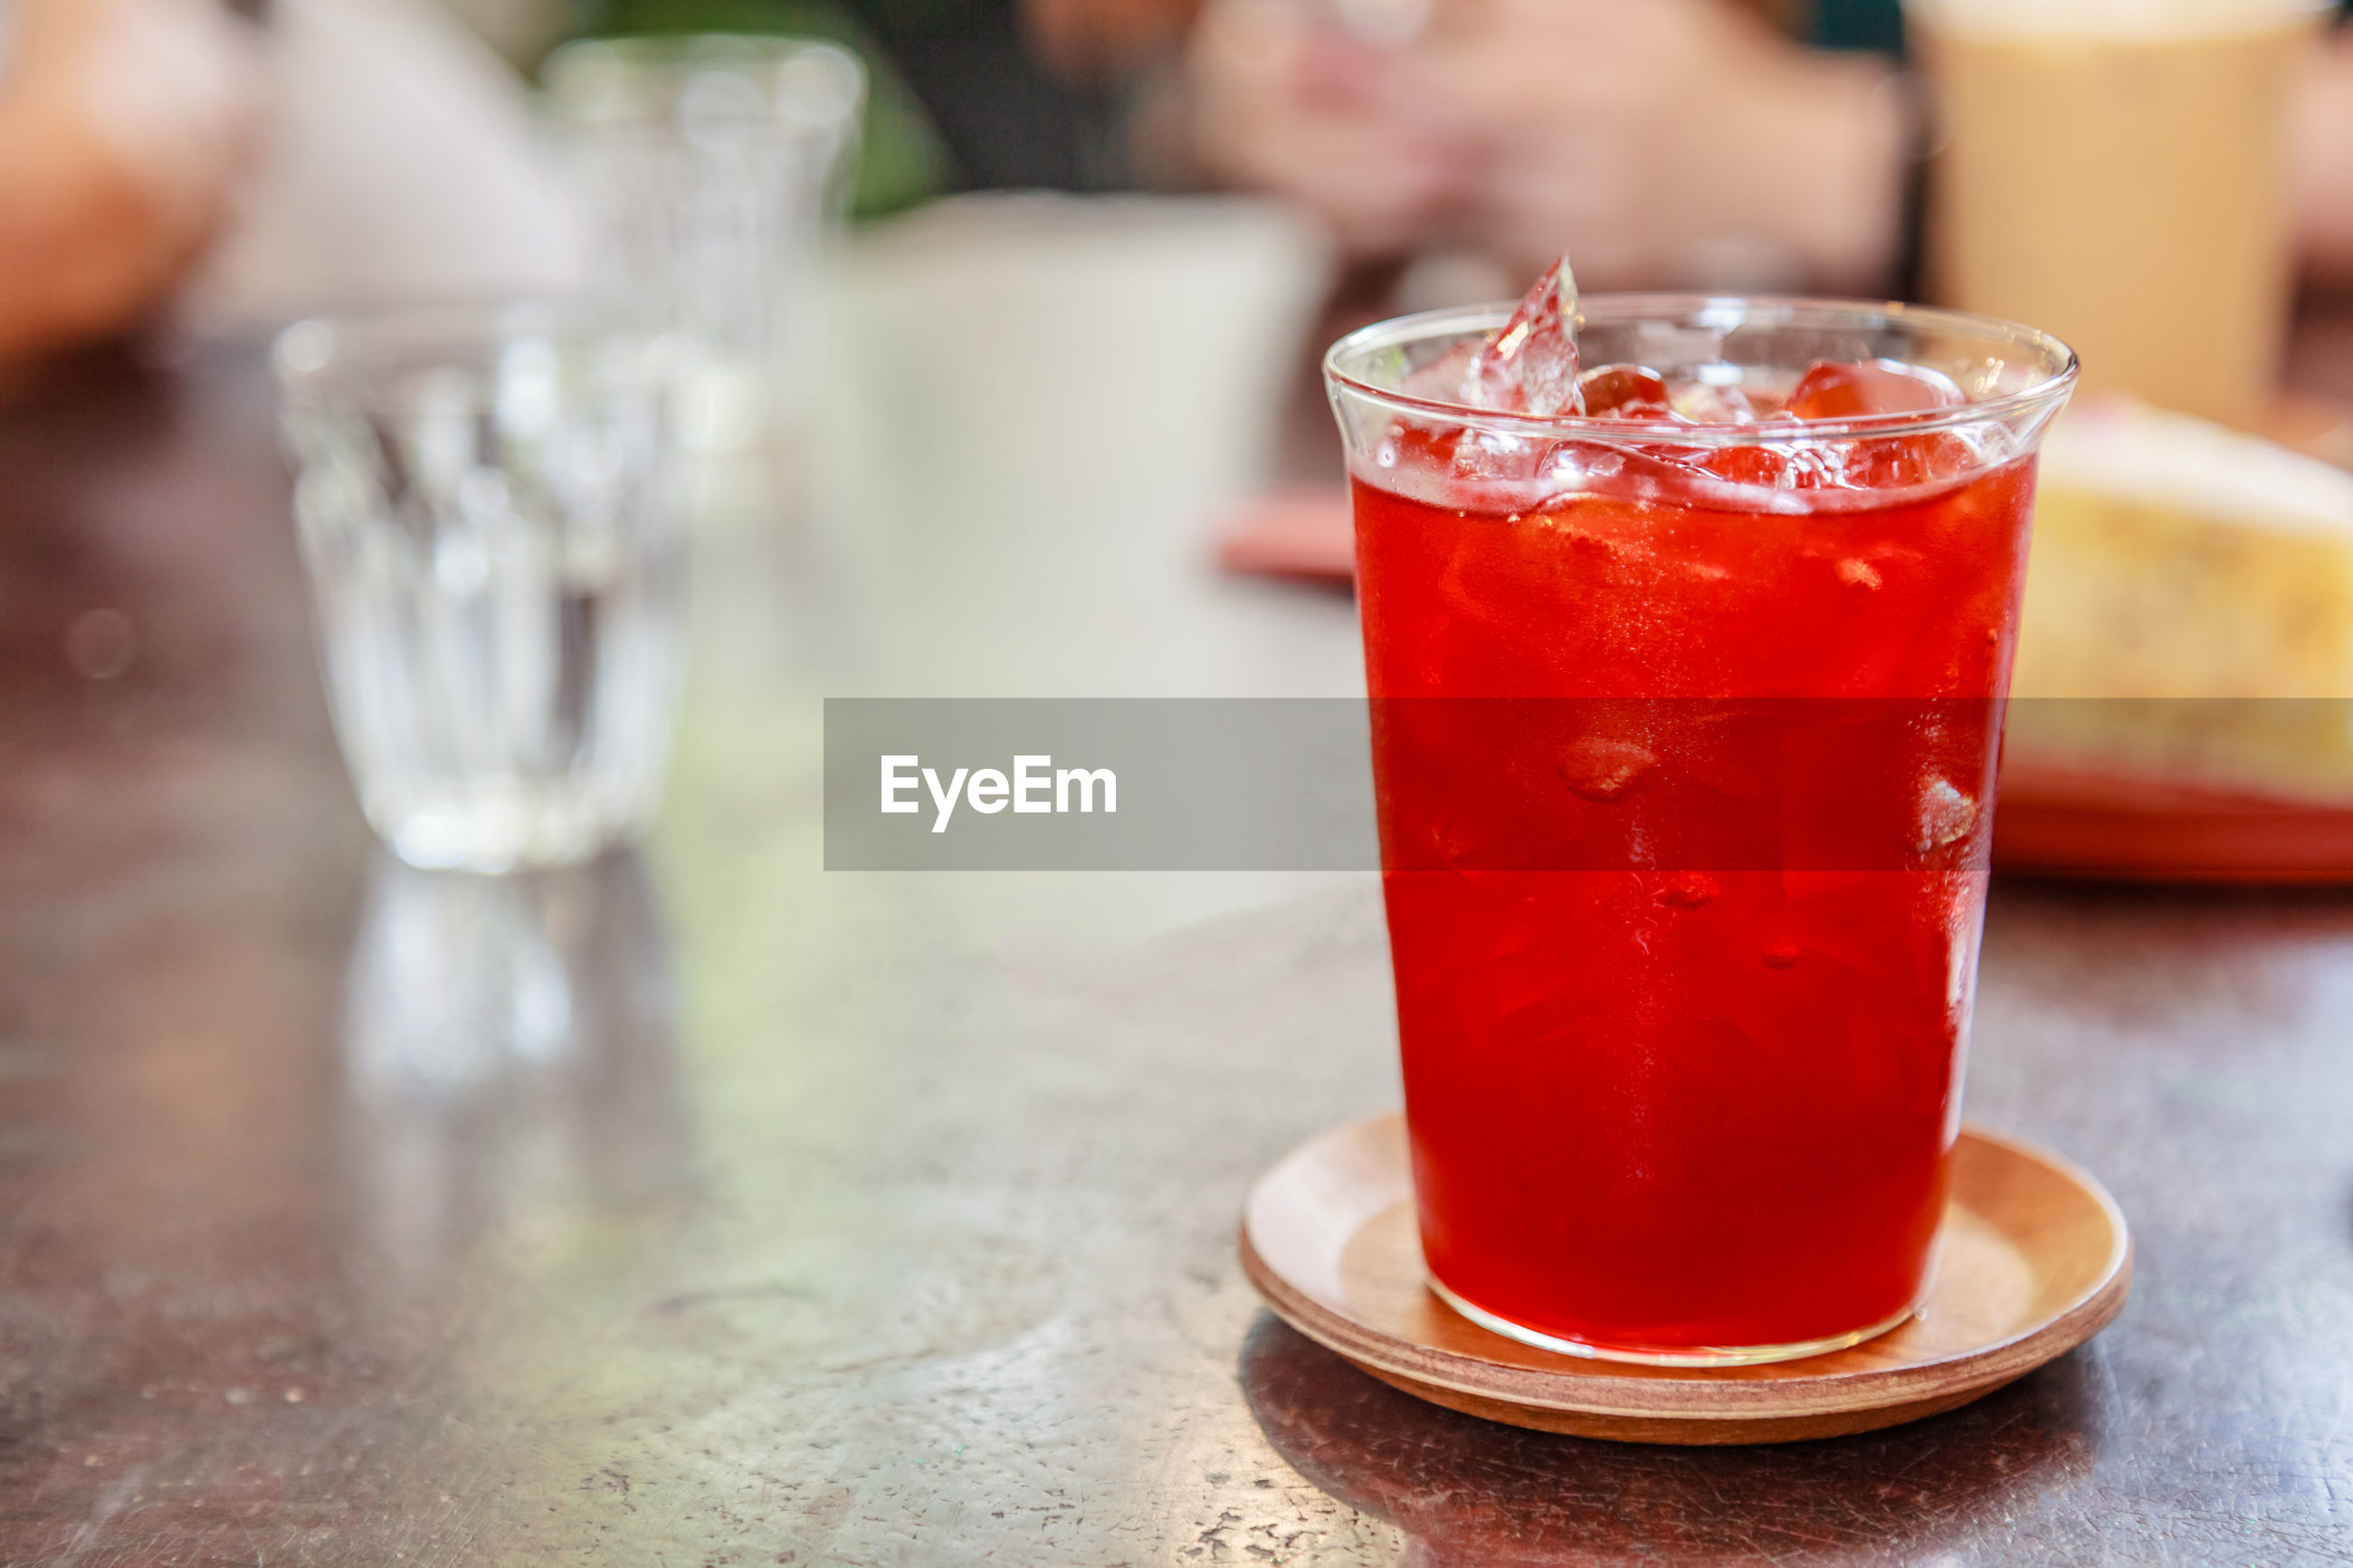 CLOSE-UP OF DRINK ON GLASS TABLE